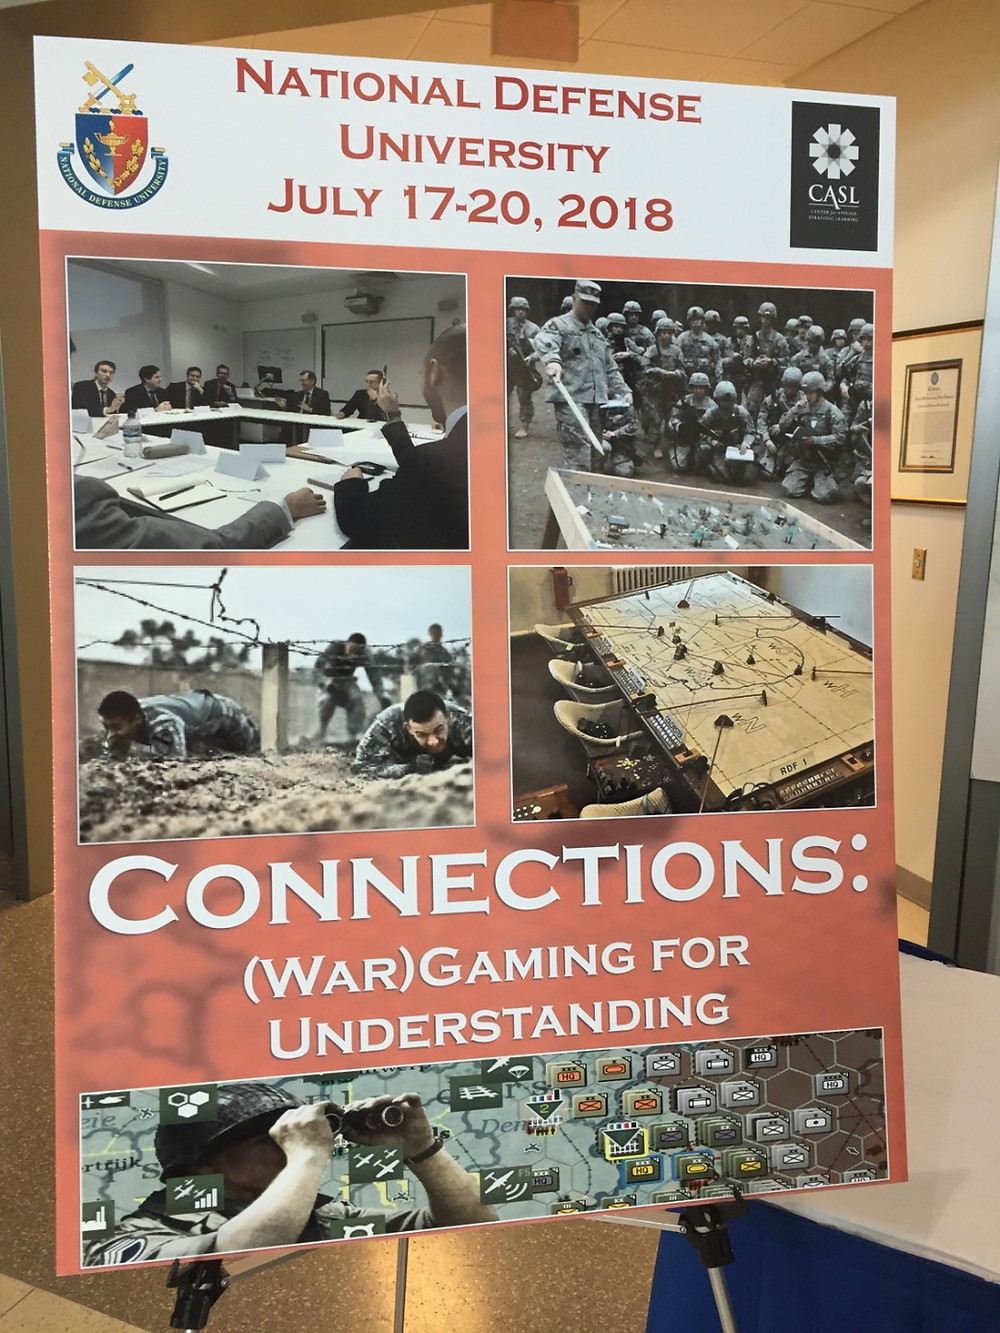 Connections Wargaming Conference 2018 poster